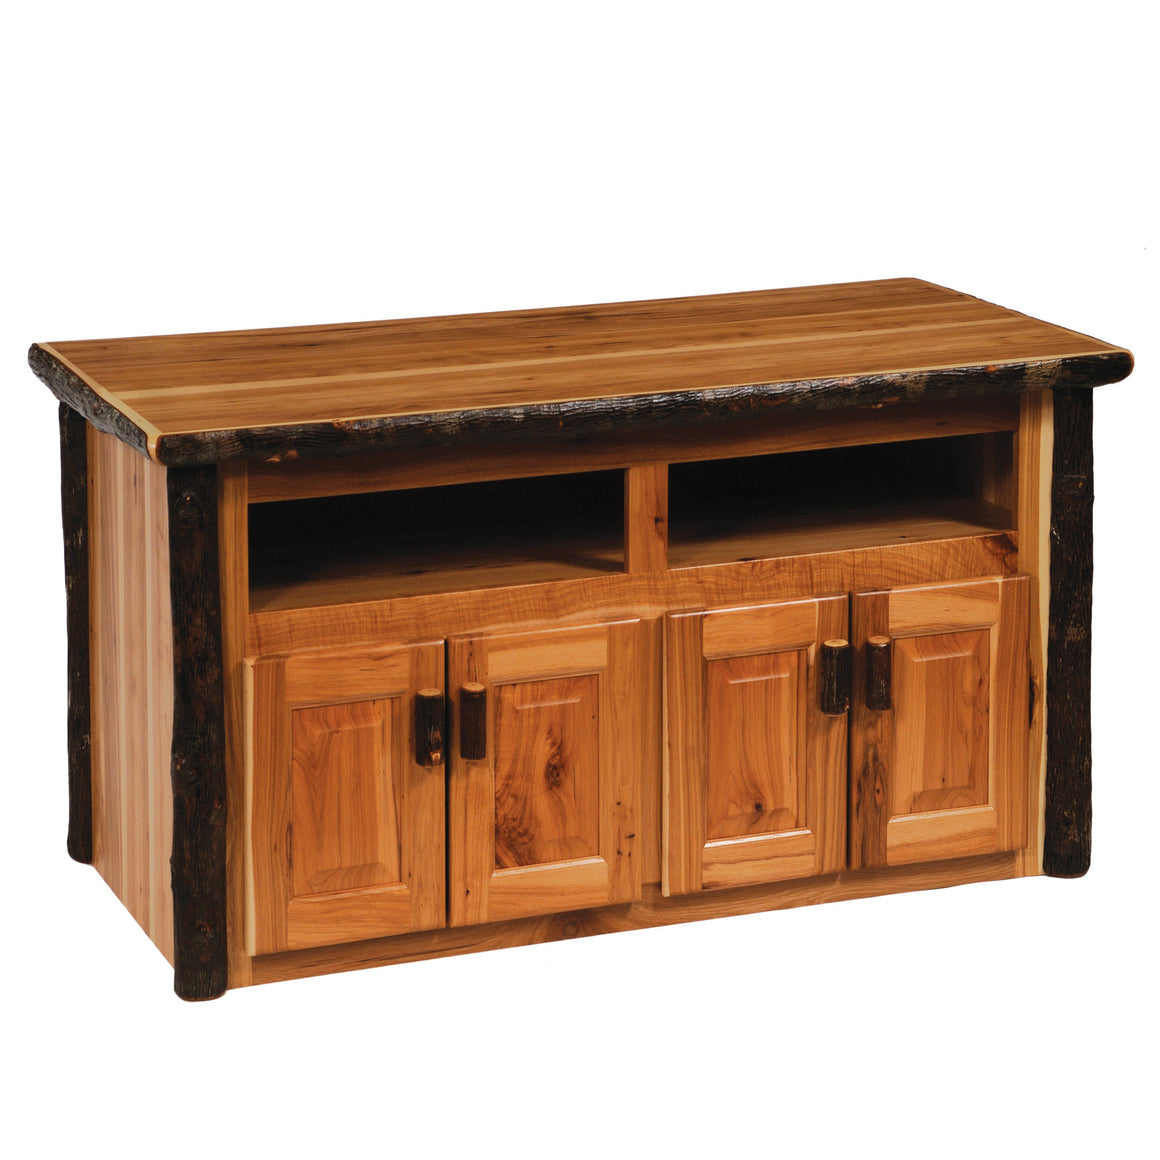 Hickory Log Widescreen Television Stand - Standard Finish - Rustic Deco Incorporated